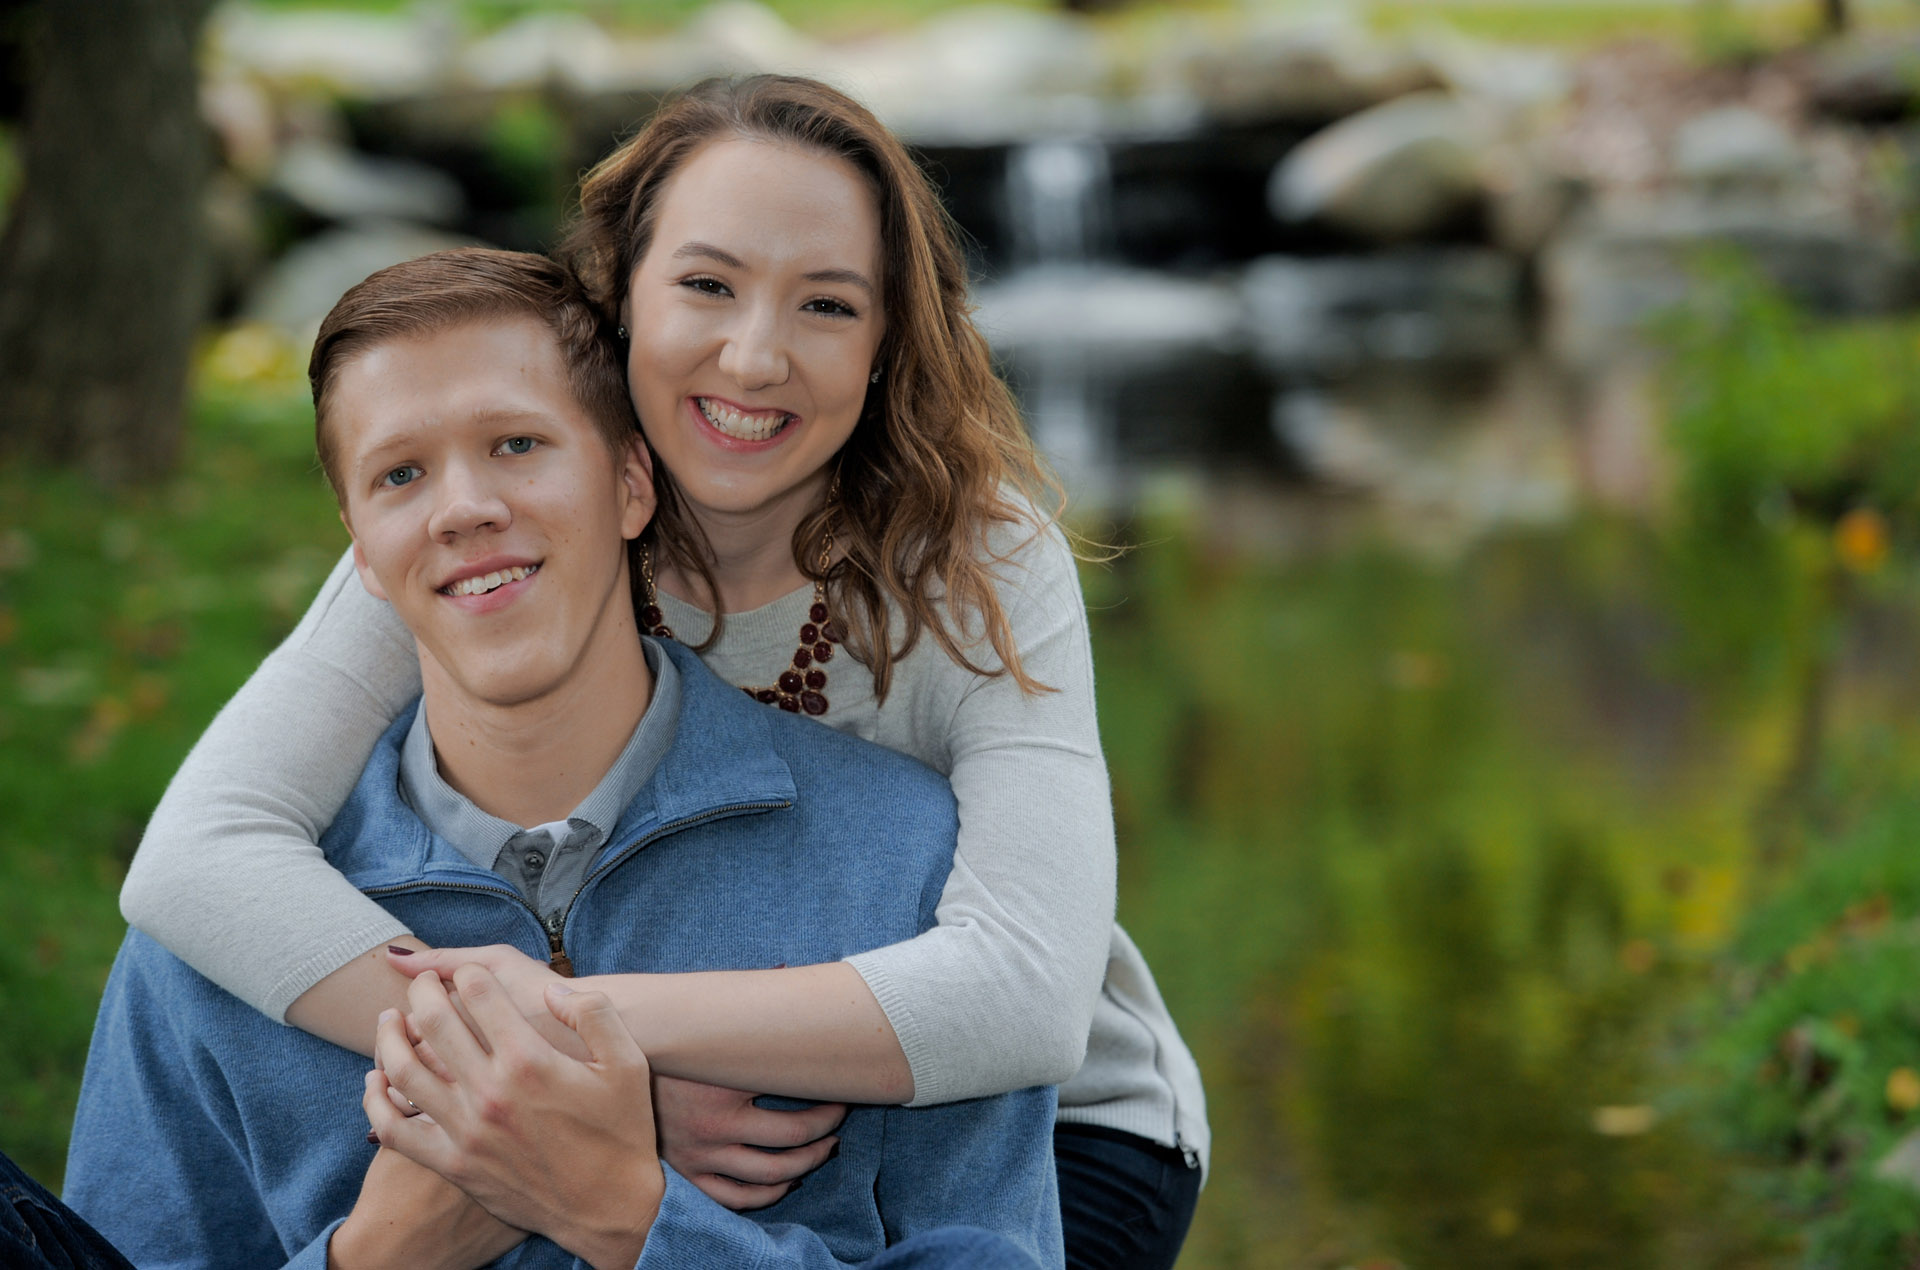 Best Oakland County Michigan lifestyles photographer is happy to photograph couples and singles in a nice, informal setting, like this Classic Park in Metro Detroit and Auburn Hills, Michigan.